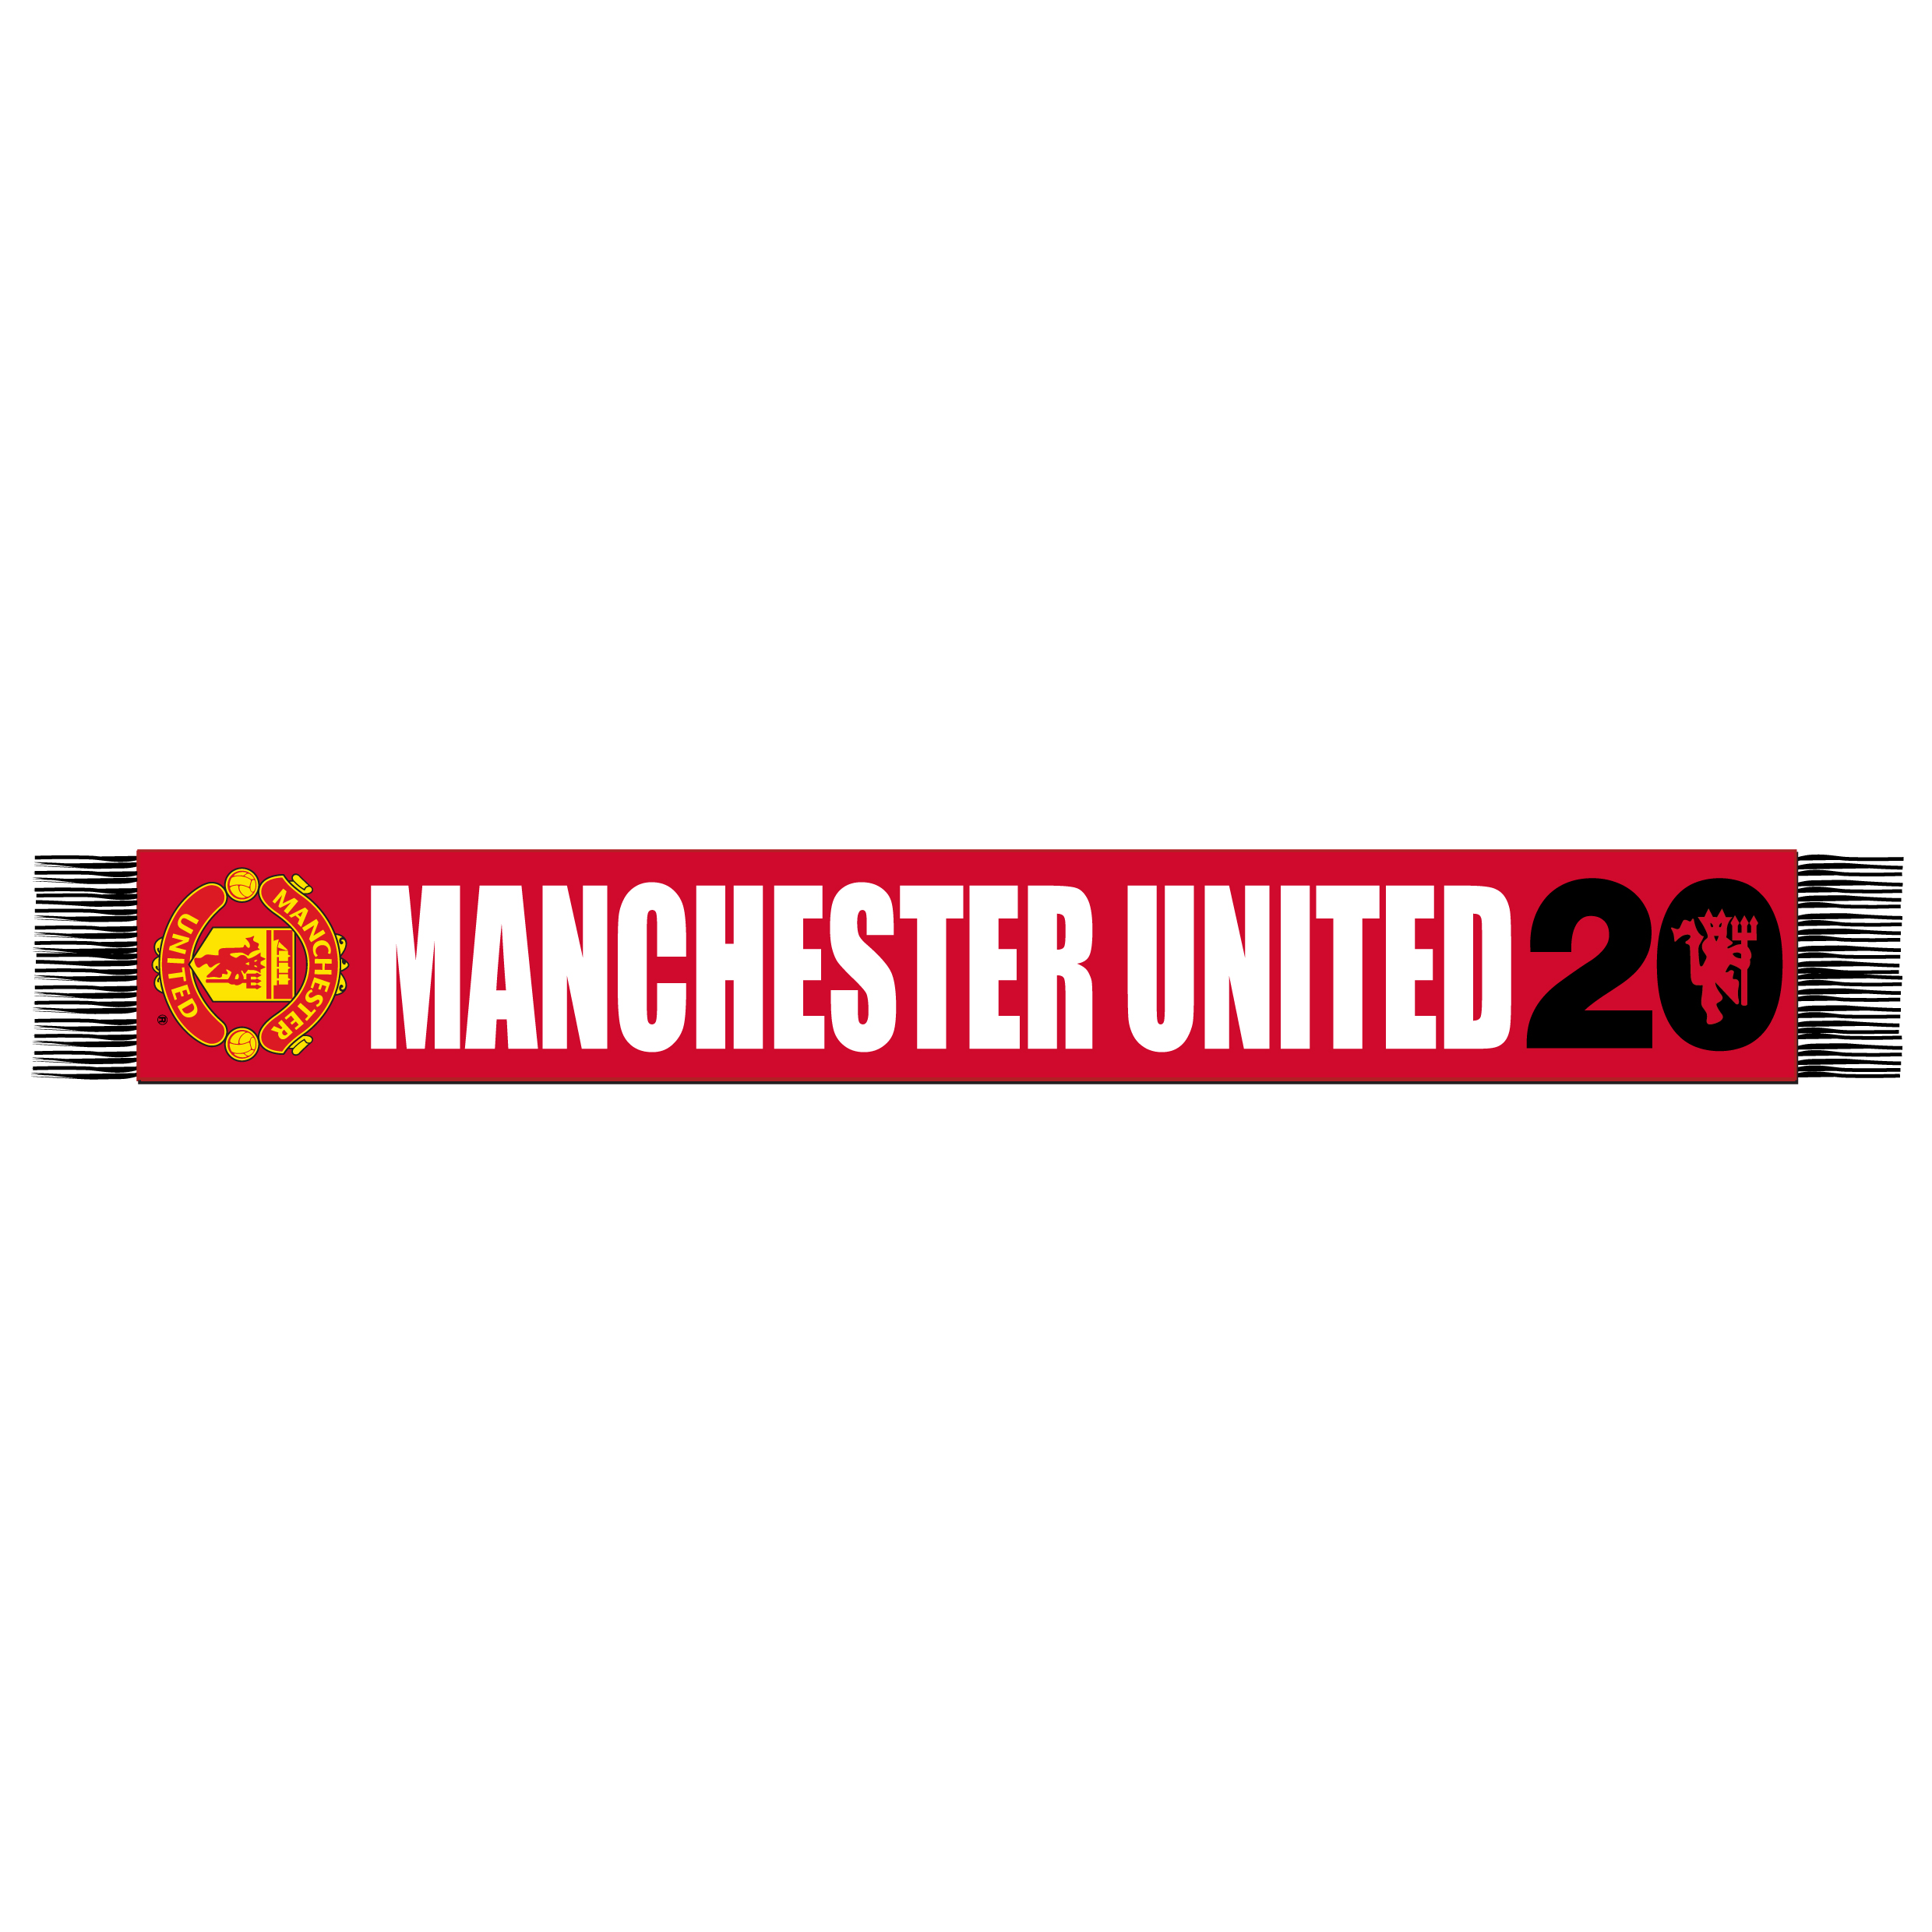 Manchester United 20 League Titles Scarf - Red/Black - Adult